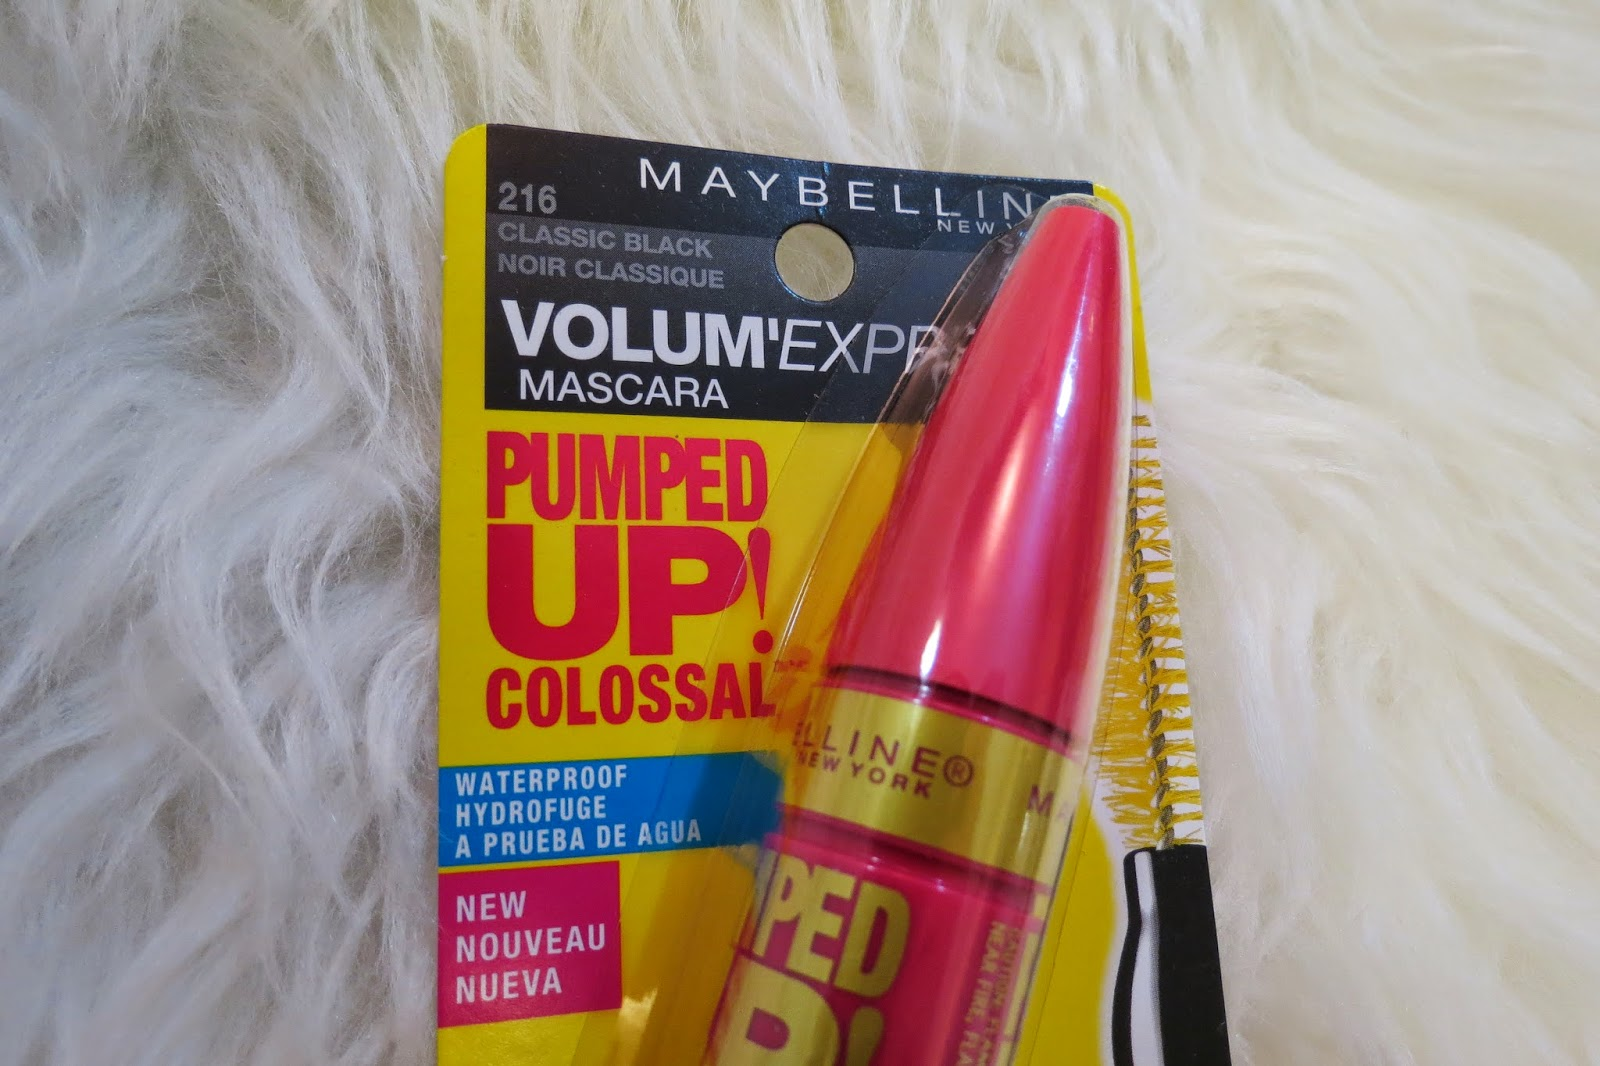 Colossal Mascara Packaging?